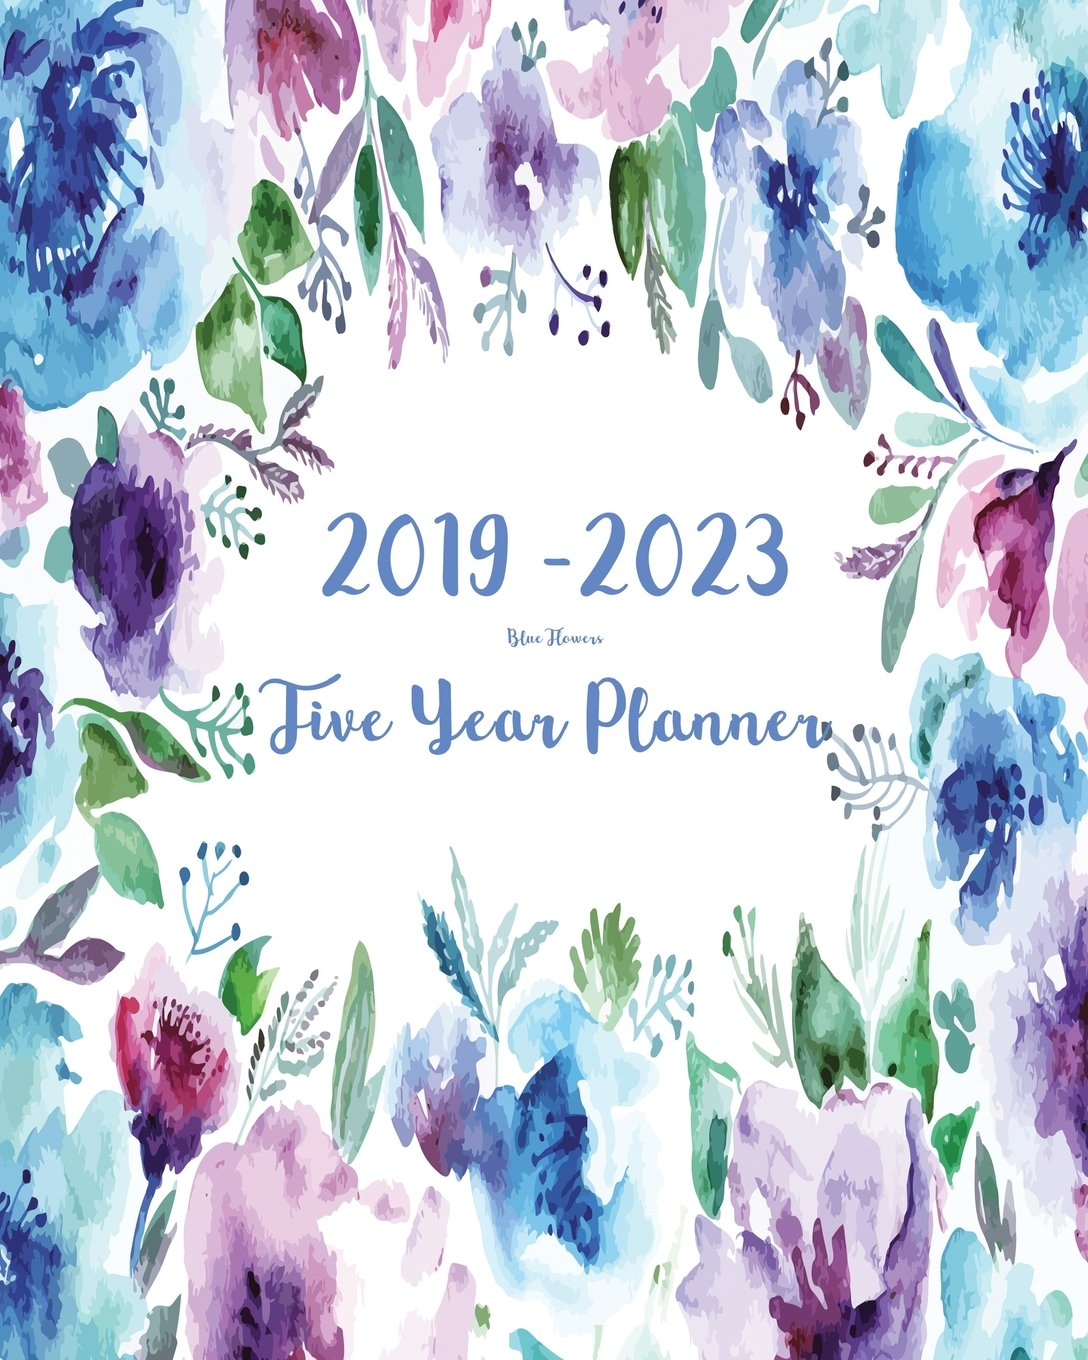 2019-2023 Five Year Planner- Blue Flowers: 60 Months Planner and Calendar,Monthly Calendar Planner, Agenda Planner and Schedule Organizer, Journal ... years (5 year calendar/5 year diary/8 x 10) Paperback – May 14, 2018 Ariana Planner 1719129983 Currency